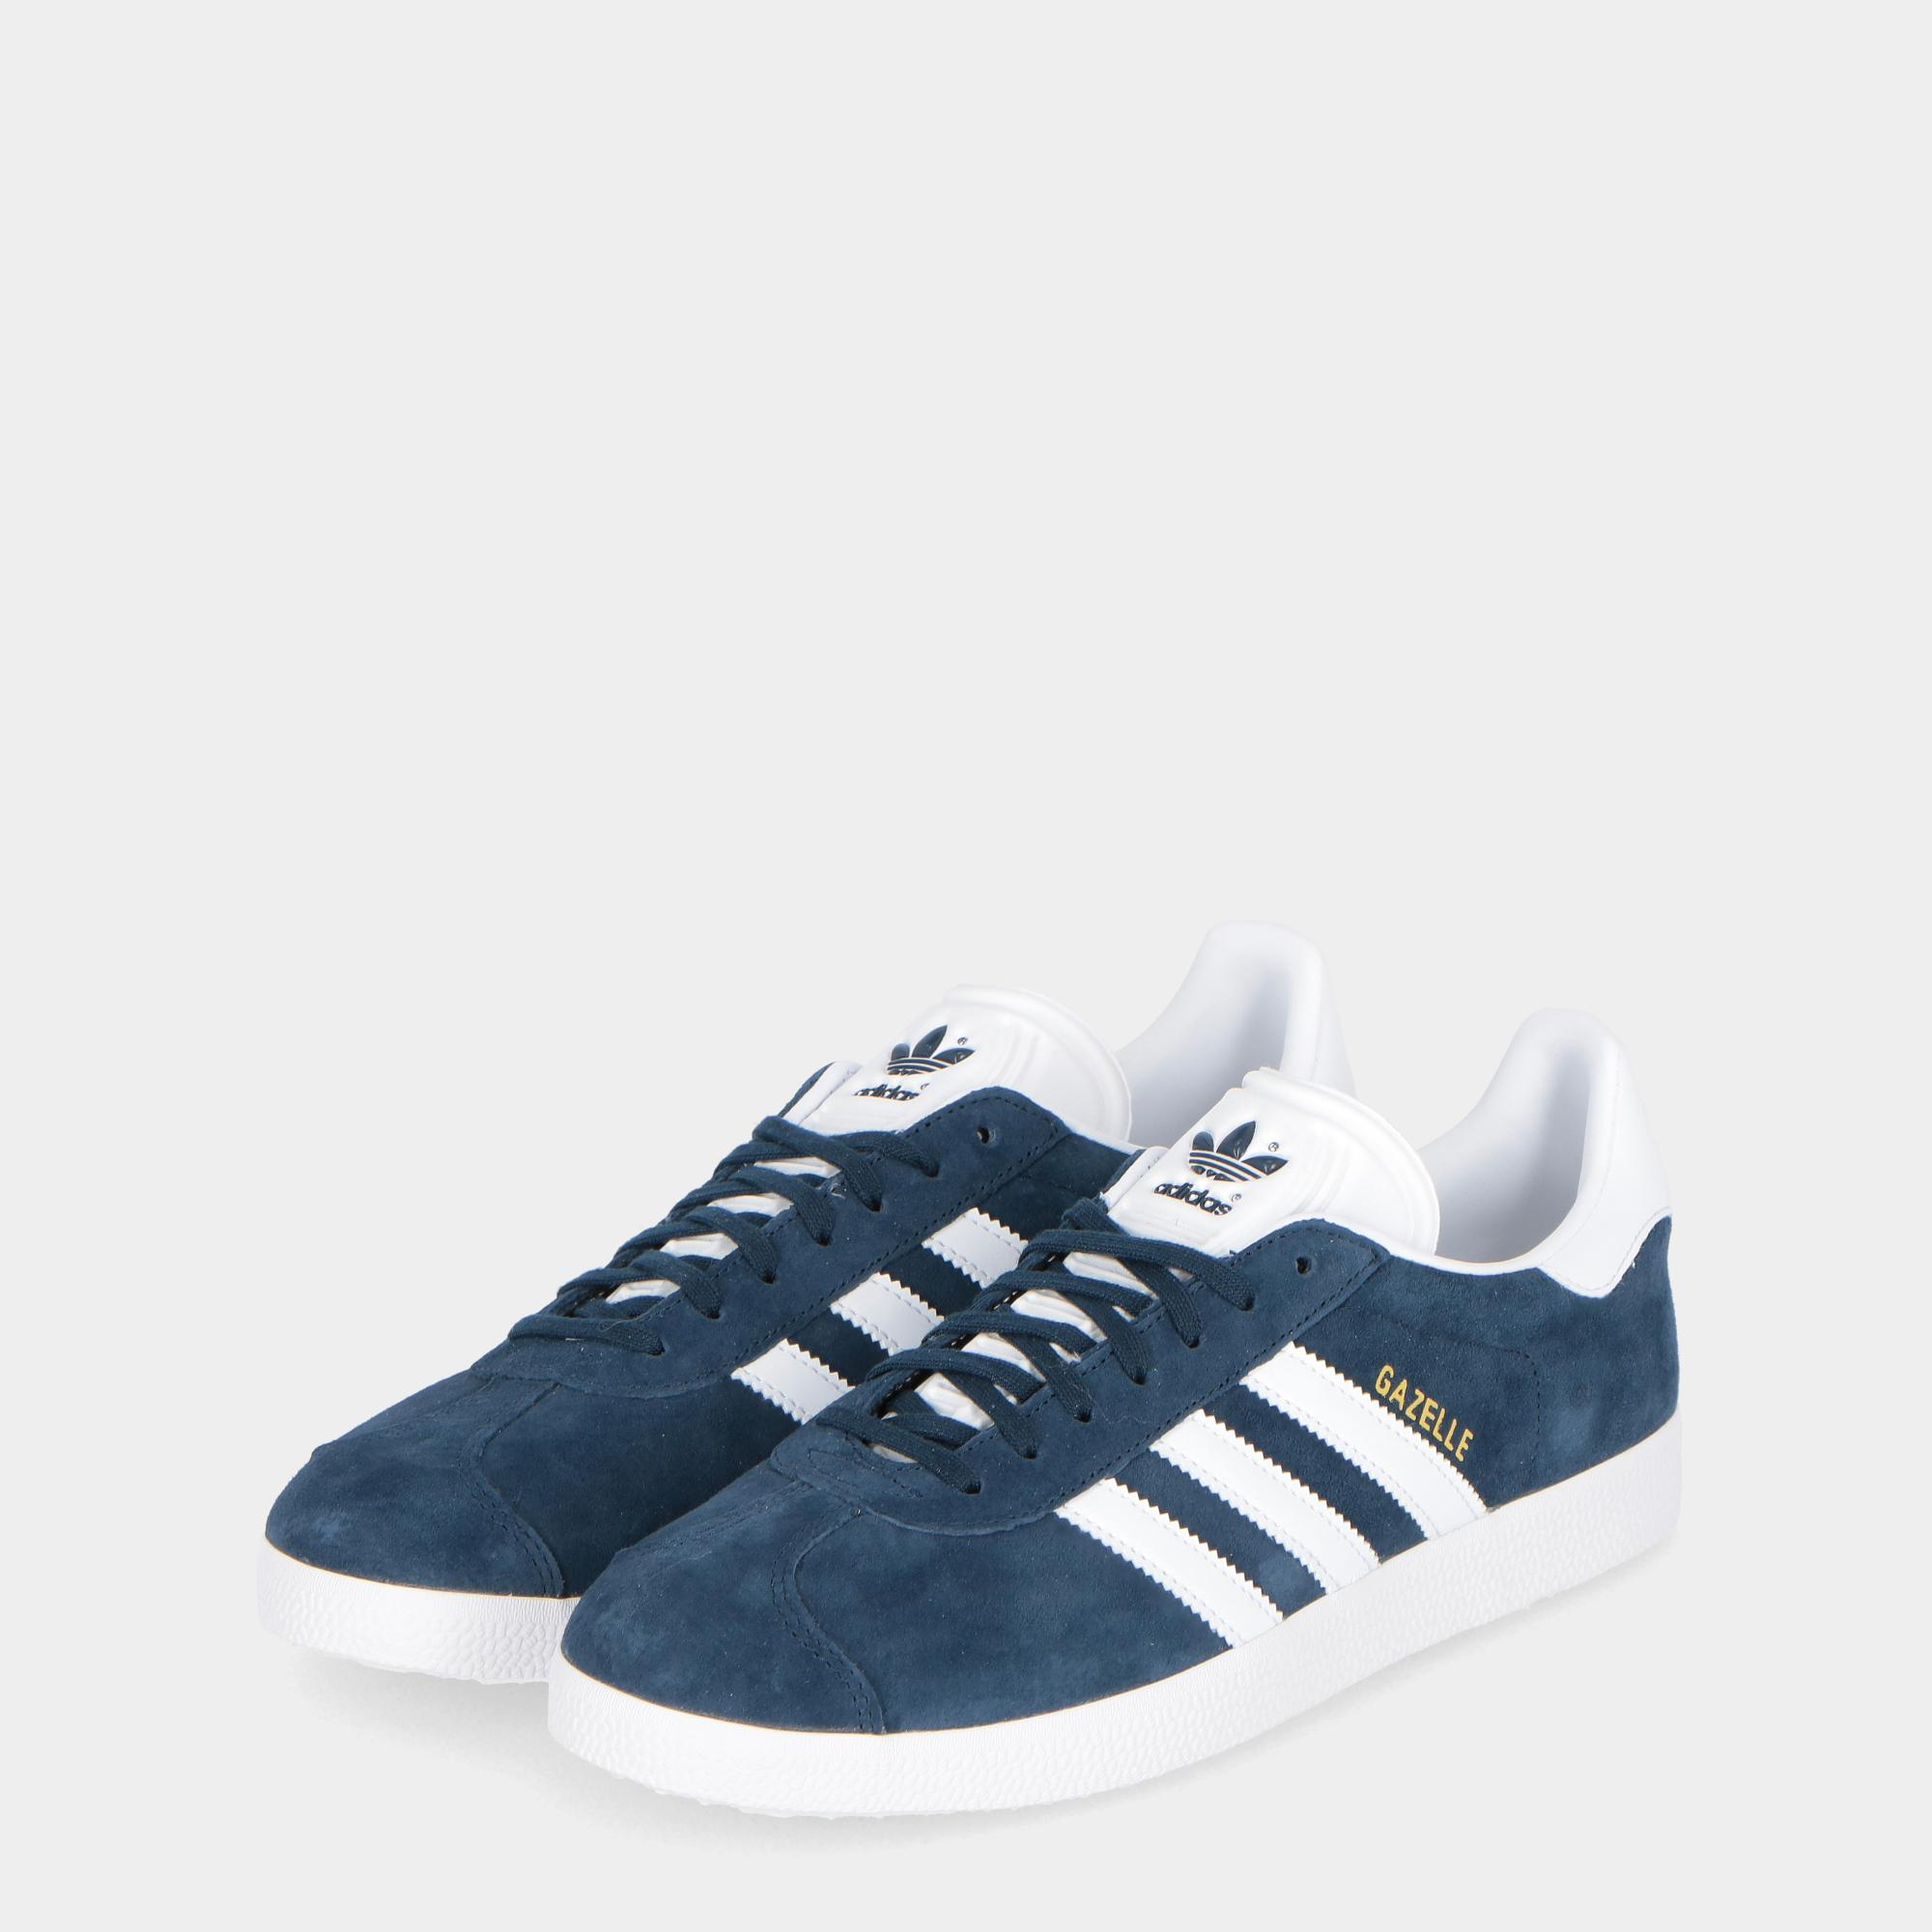 Adidas Gazelle Navy white gold